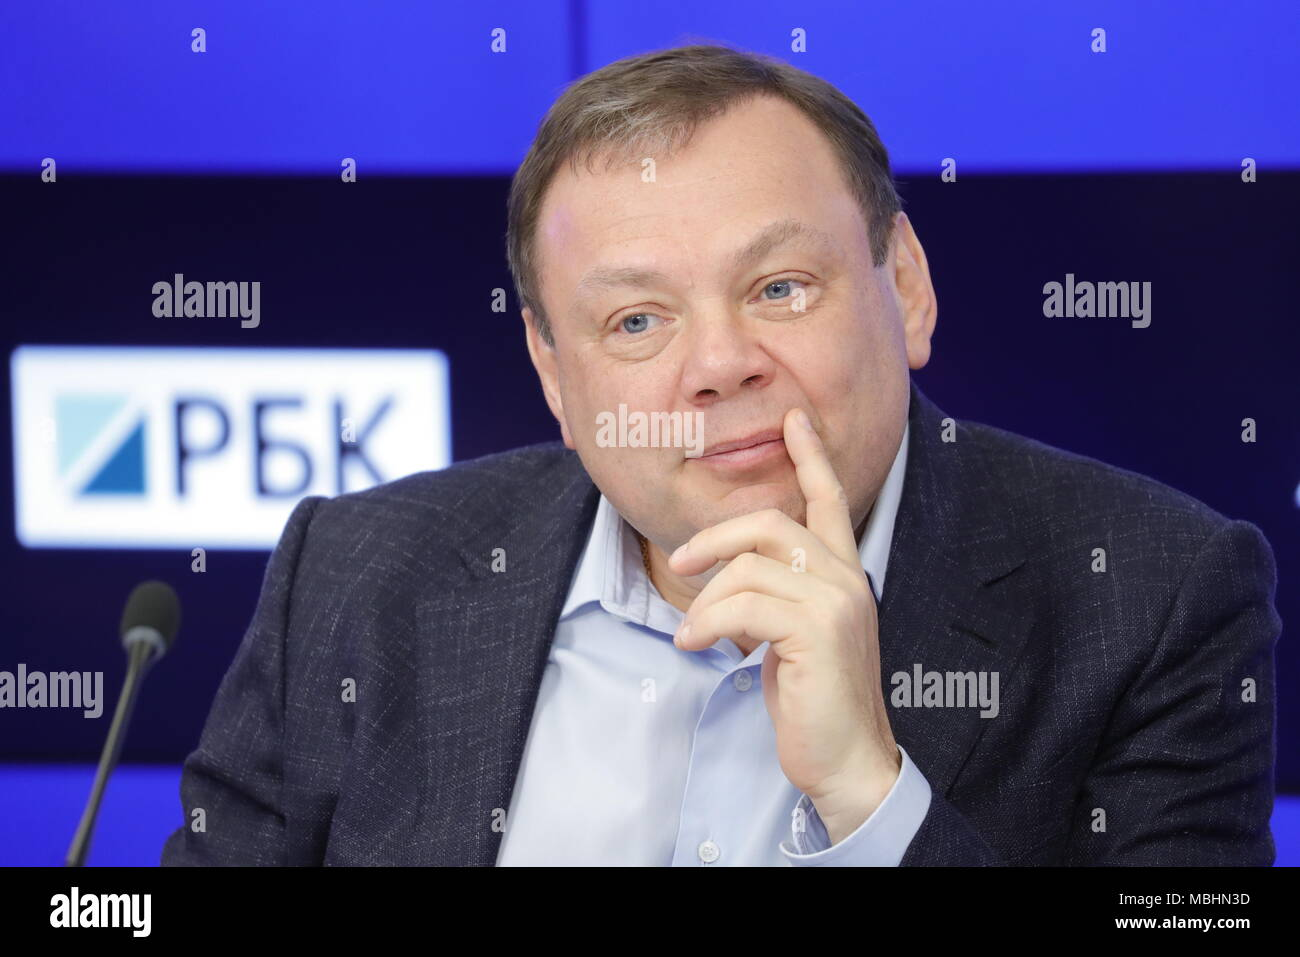 Moscow, Russia. 11th Apr, 2018. MOSCOW, RUSSIA - APRIL 11, 2018: Mikhail Fridman, chairman of the Supervisory Board at Alfa-Group, looks on during a press conference given by the organisers of the 2018 Alfa Future People festival of music and technology. Mikhail Japaridze/TASS Credit: ITAR-TASS News Agency/Alamy Live News - Stock Image